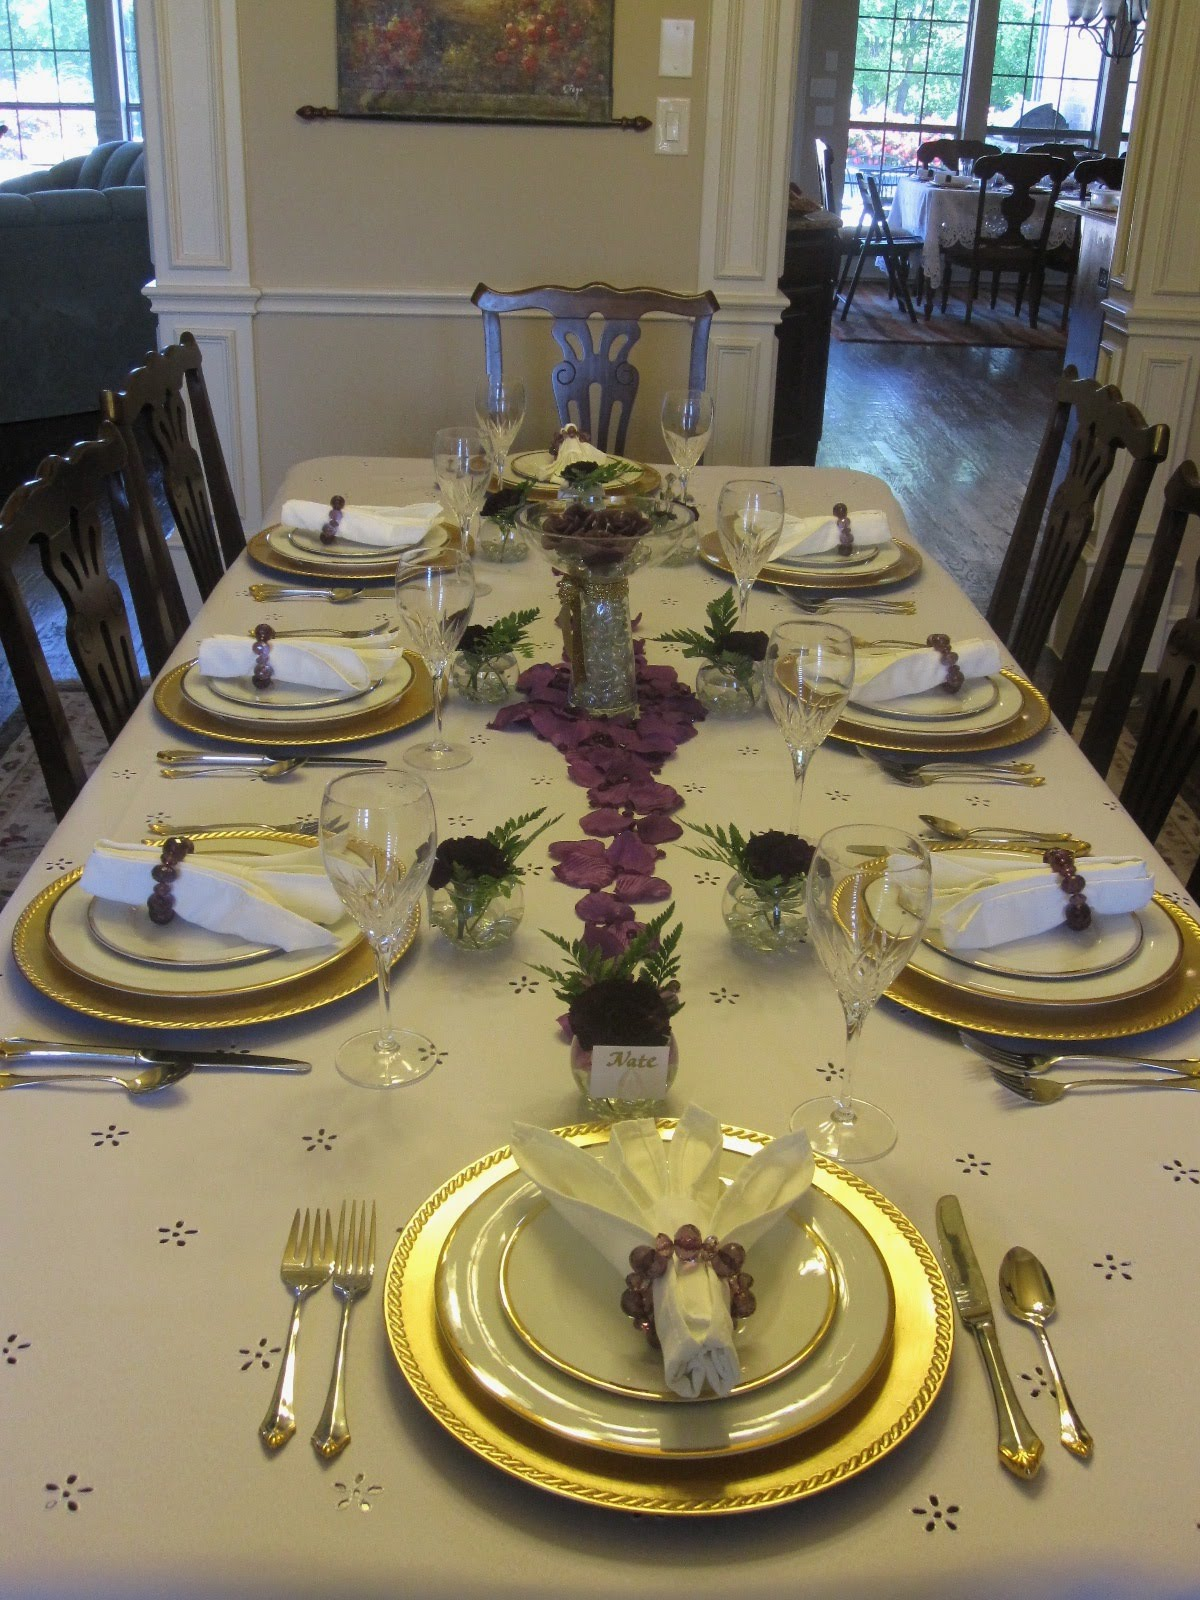 Creative hospitality decorative dinner table setting ideas Simple table setting for lunch